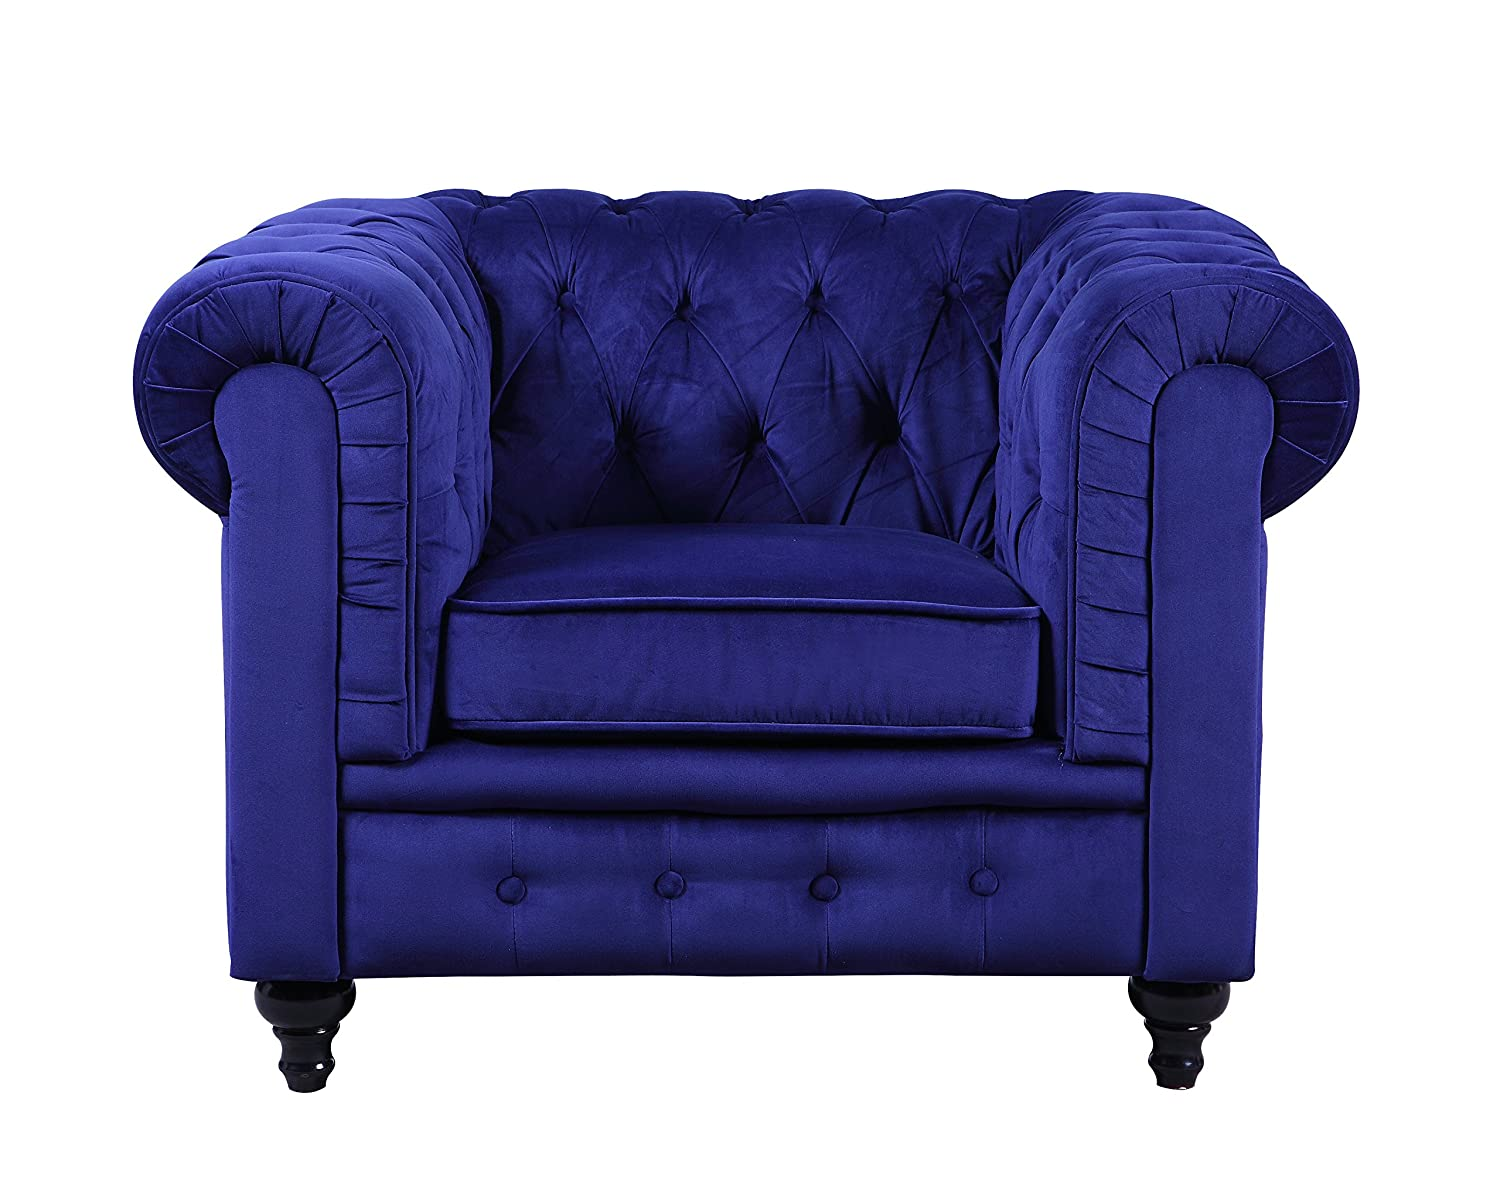 navy chair of ottoman and for chairs creative new blue living accent room